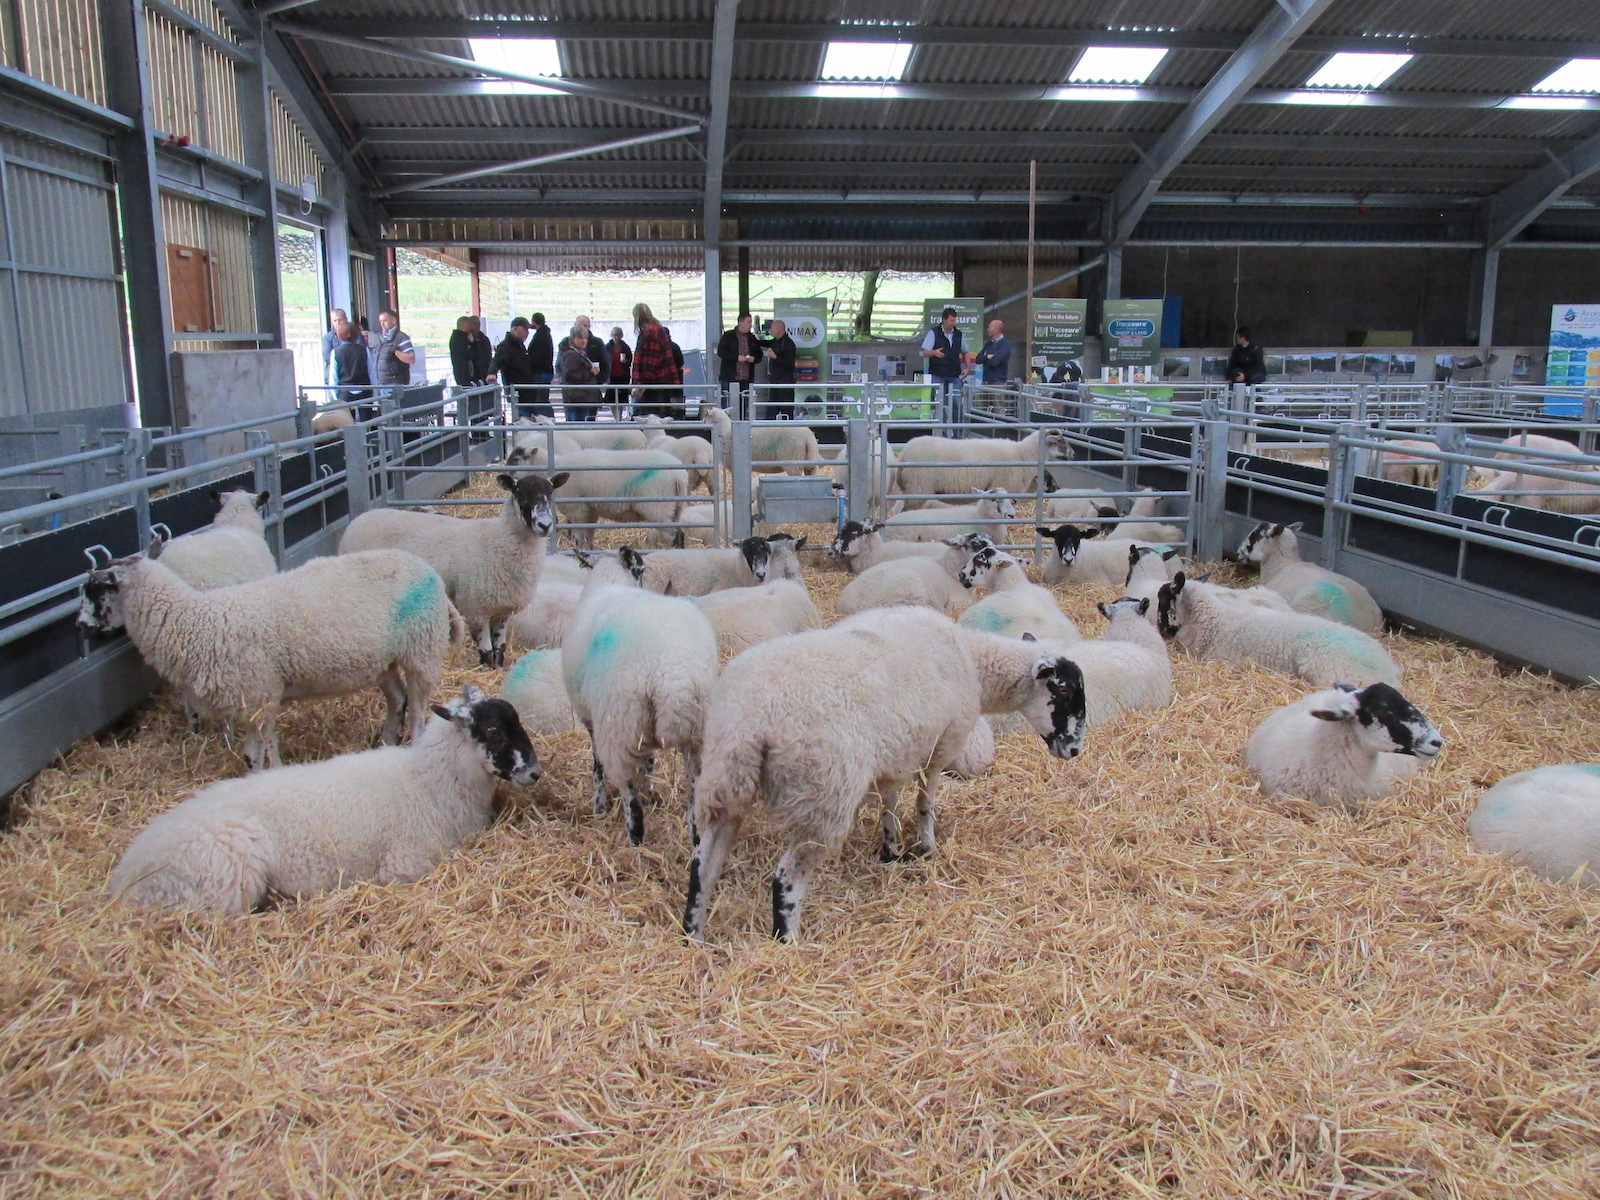 Sheep at auction